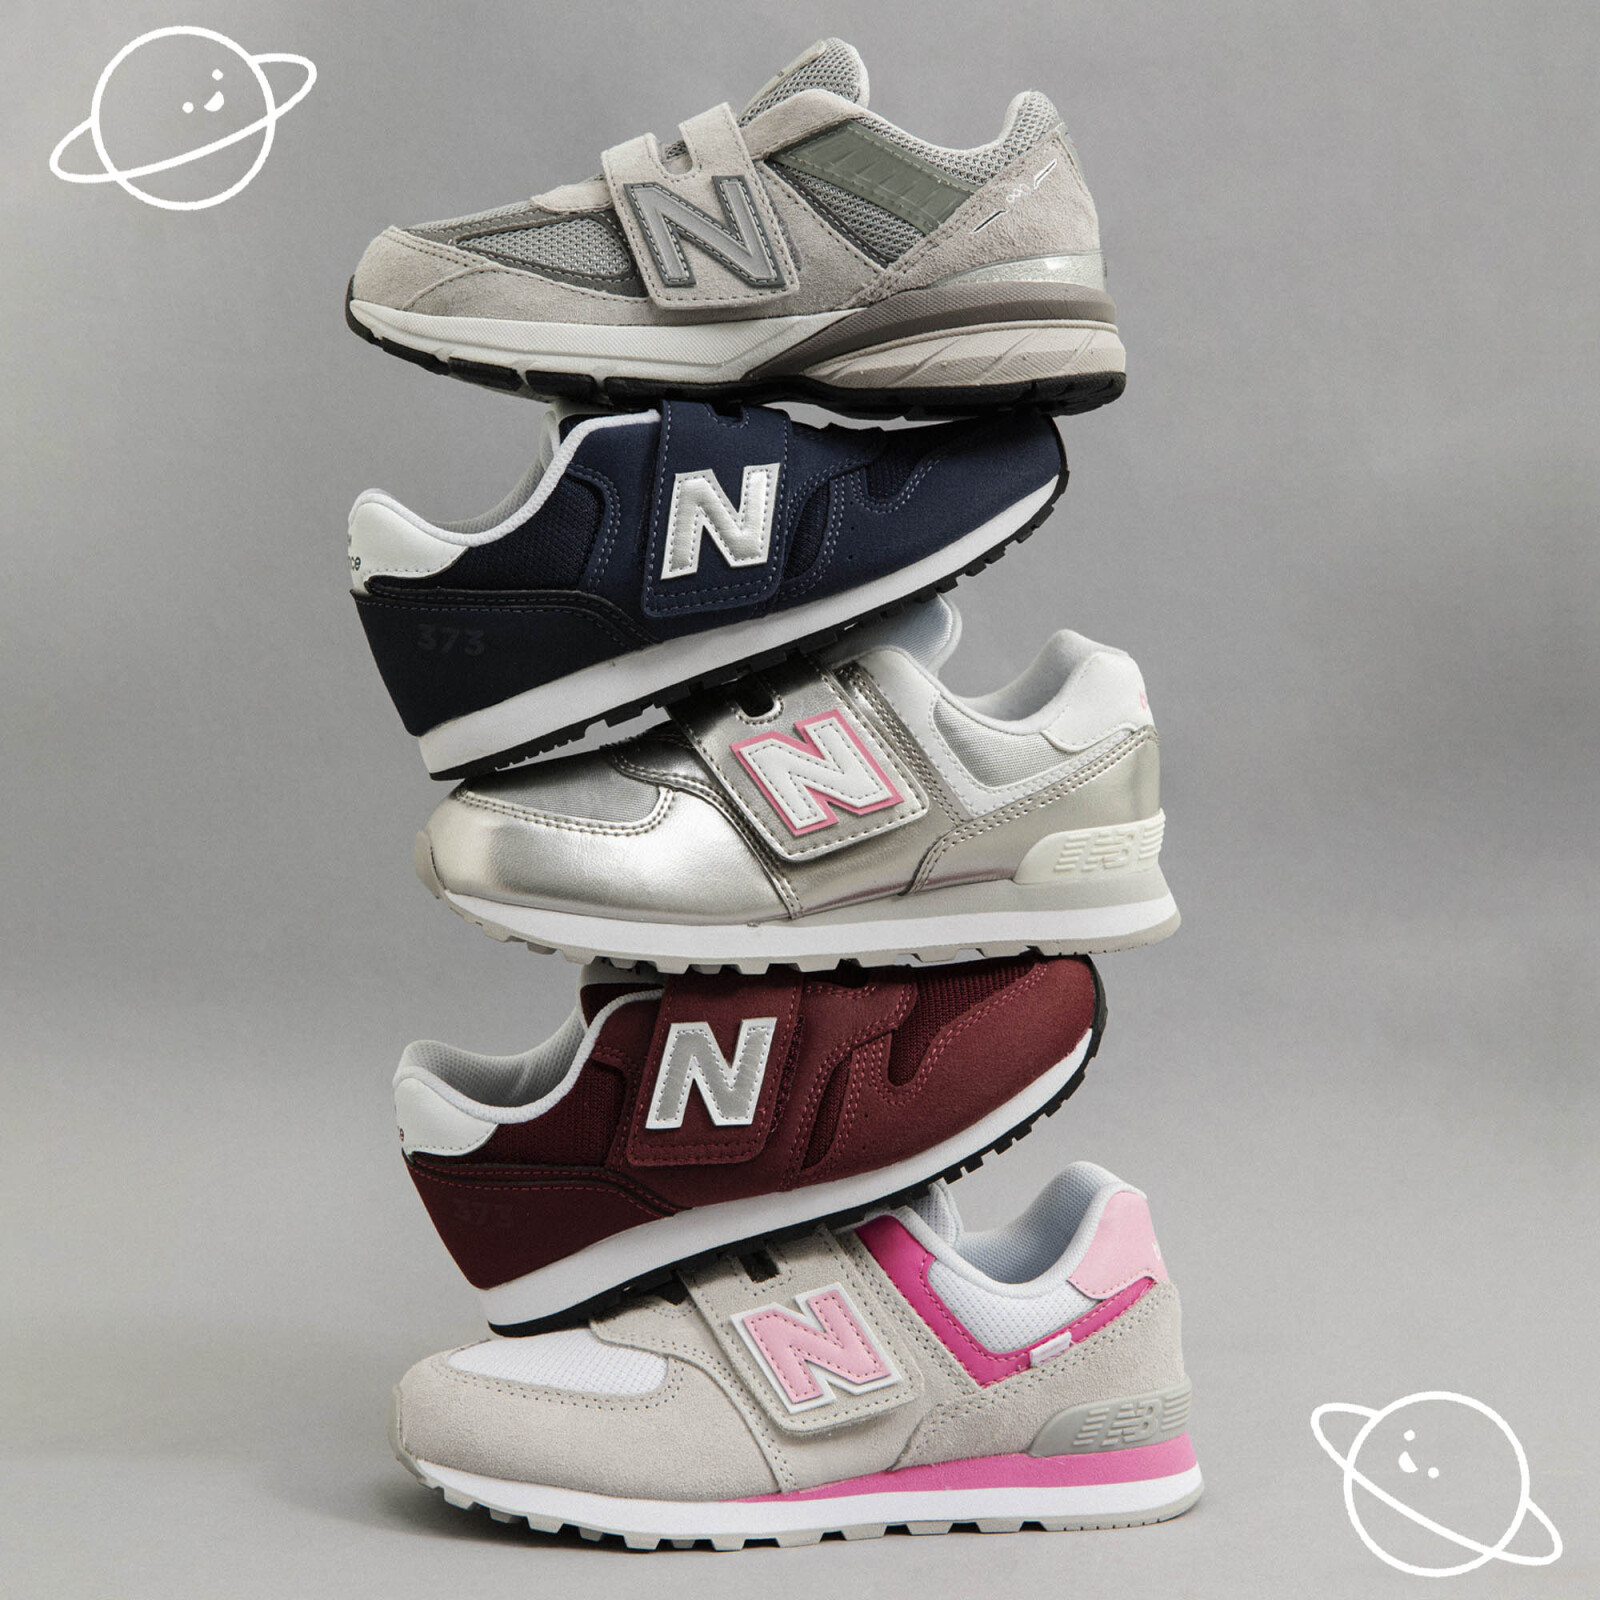 New arrivals from Nike